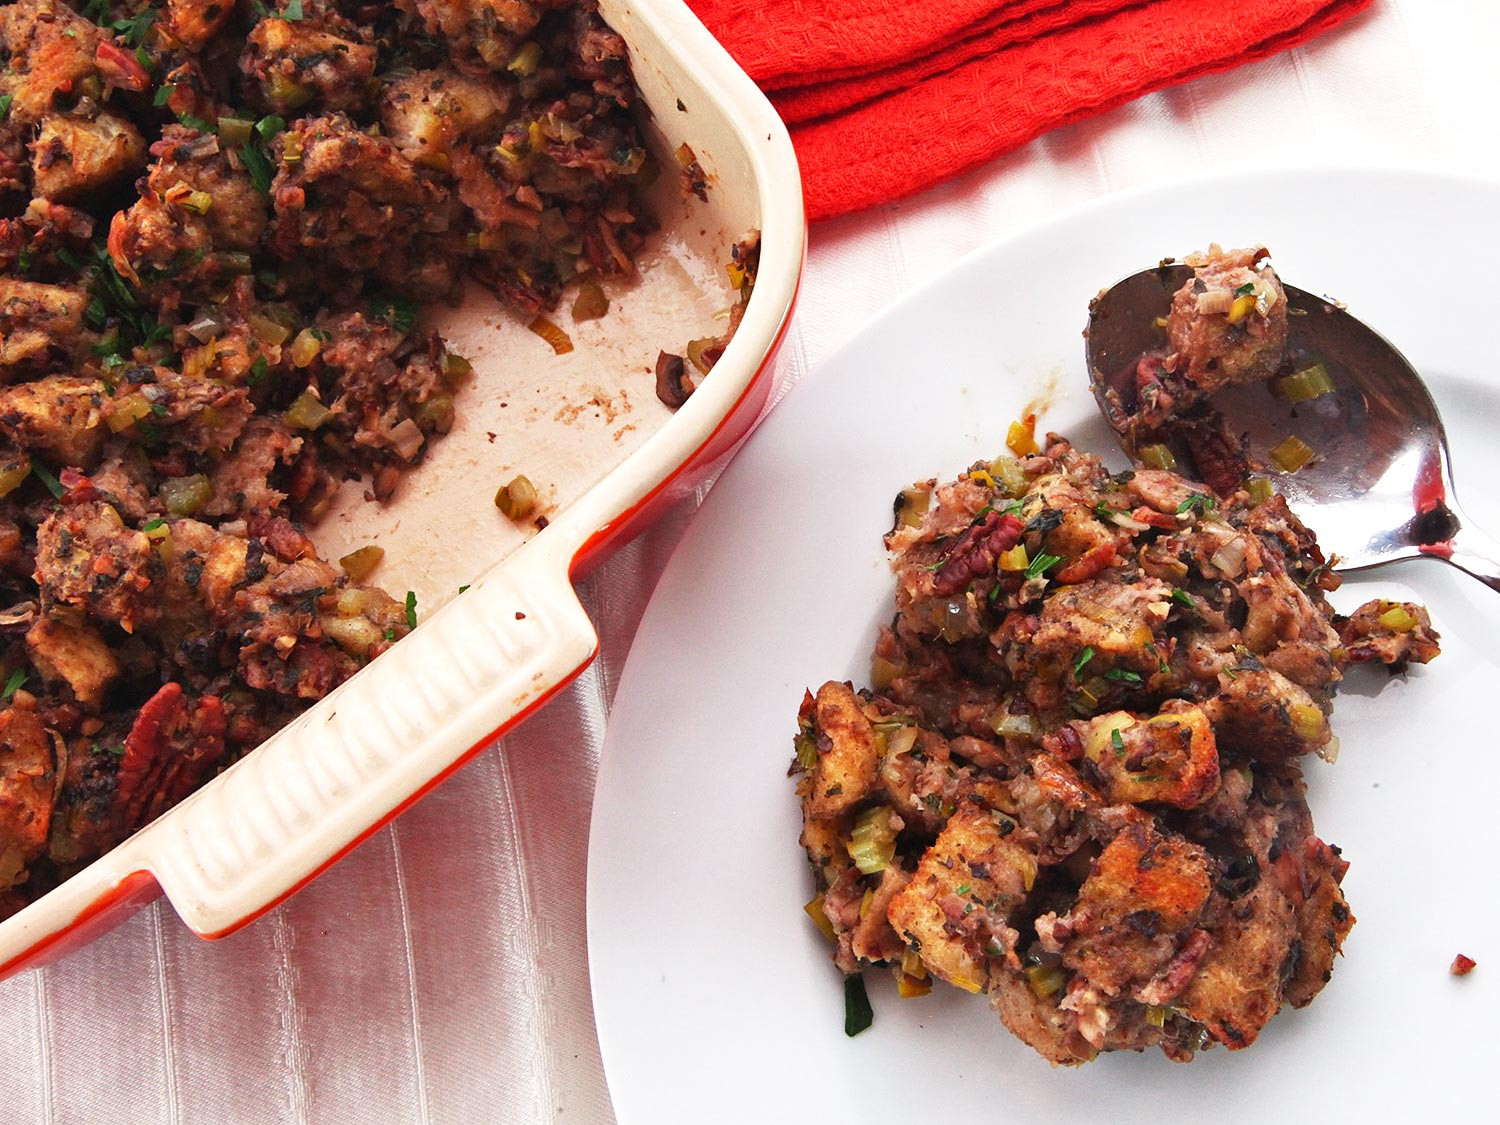 Vegetarian Stuffing Recipes Thanksgiving  The Food Lab How to Make Vegan Stuffing That Really Rocks